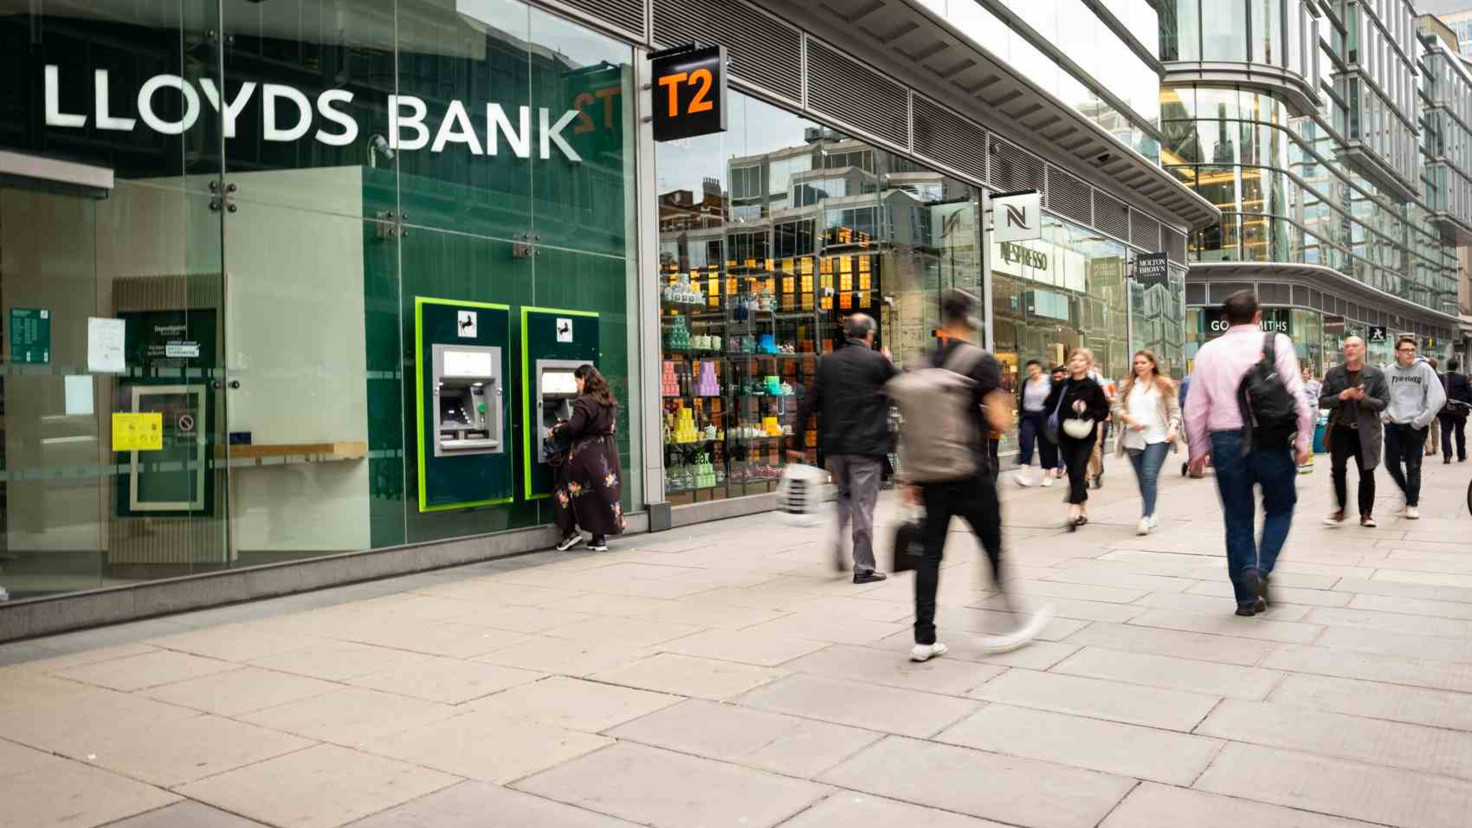 Lloyds bank profits fall sharply due to 1.8bn PPI charge